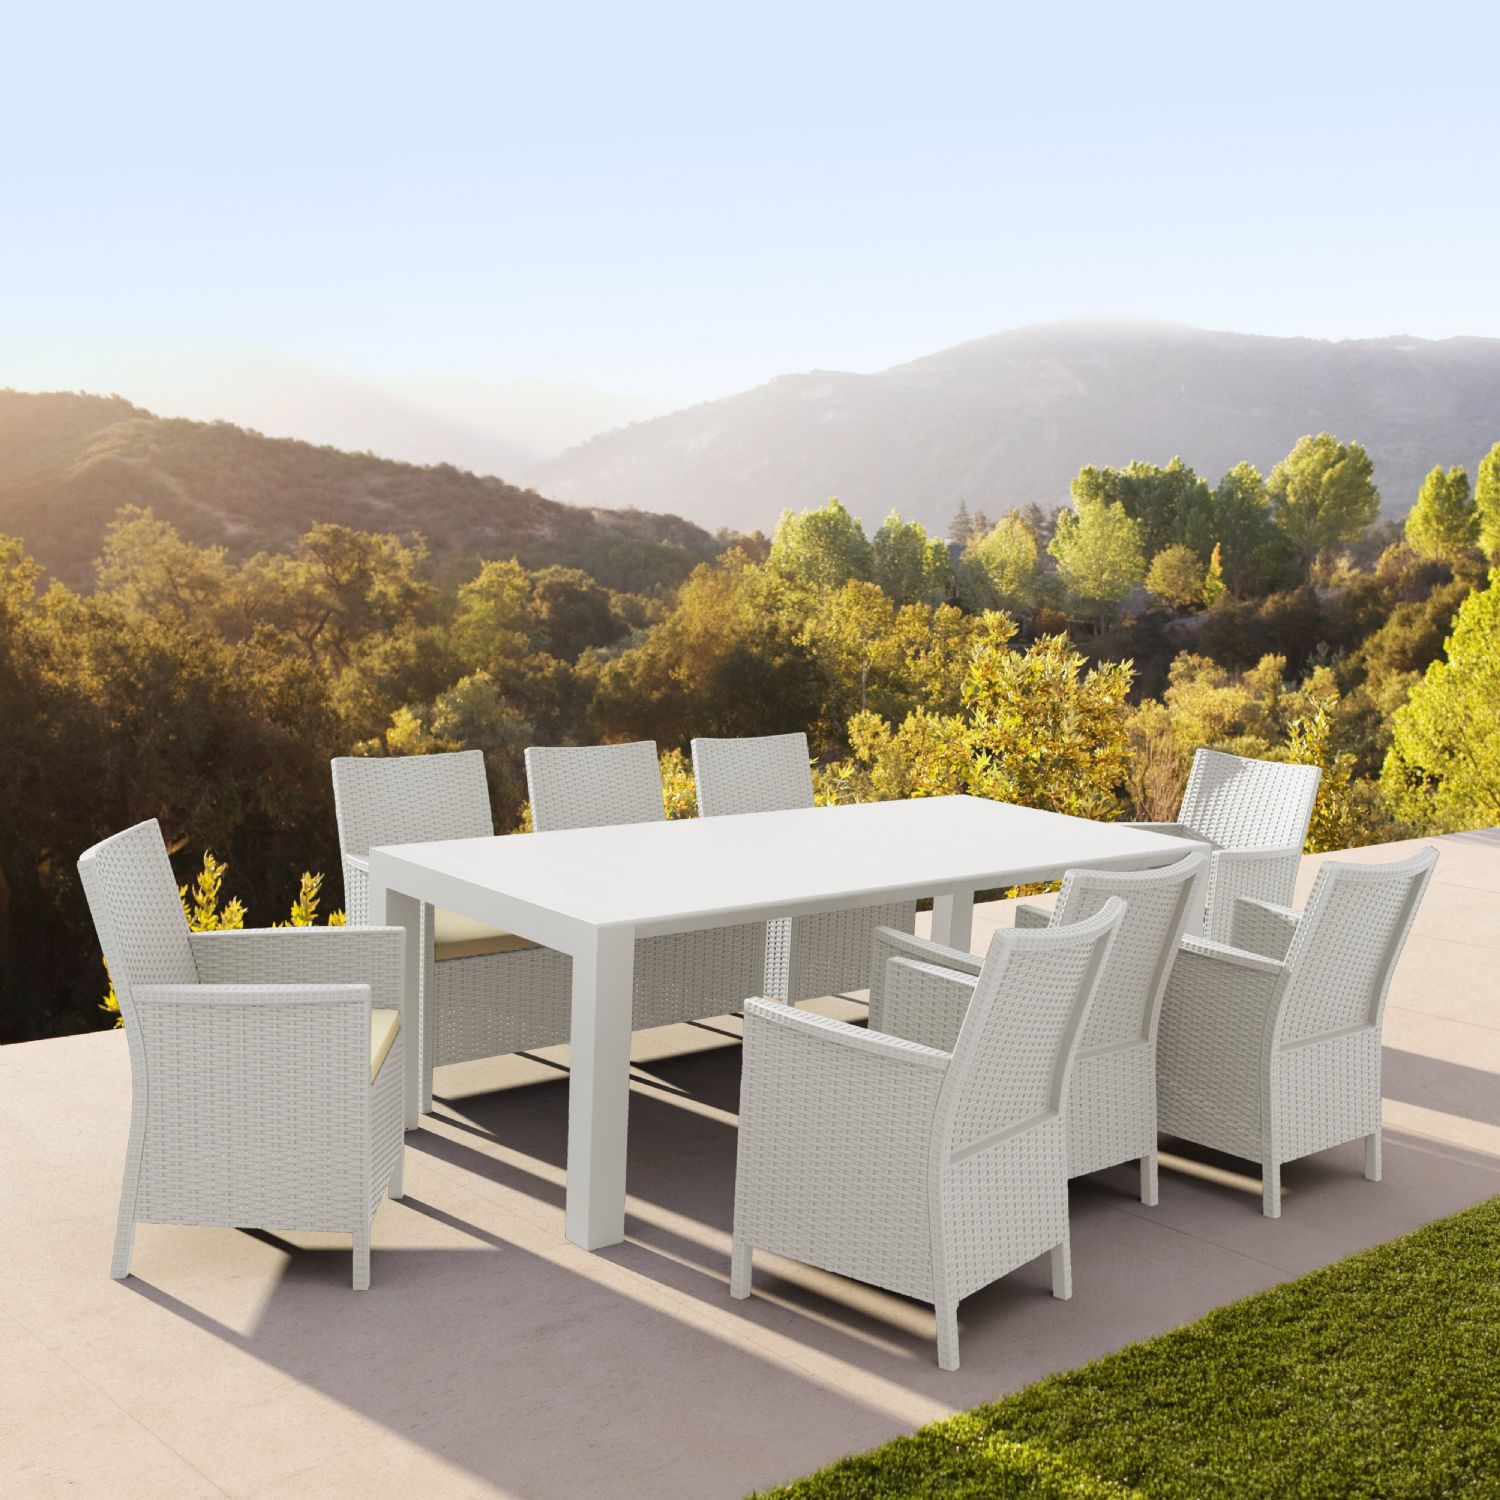 Vegas Outdoor Dining Table Extendable from 70 to 86 inch White ISP774-WH - 26